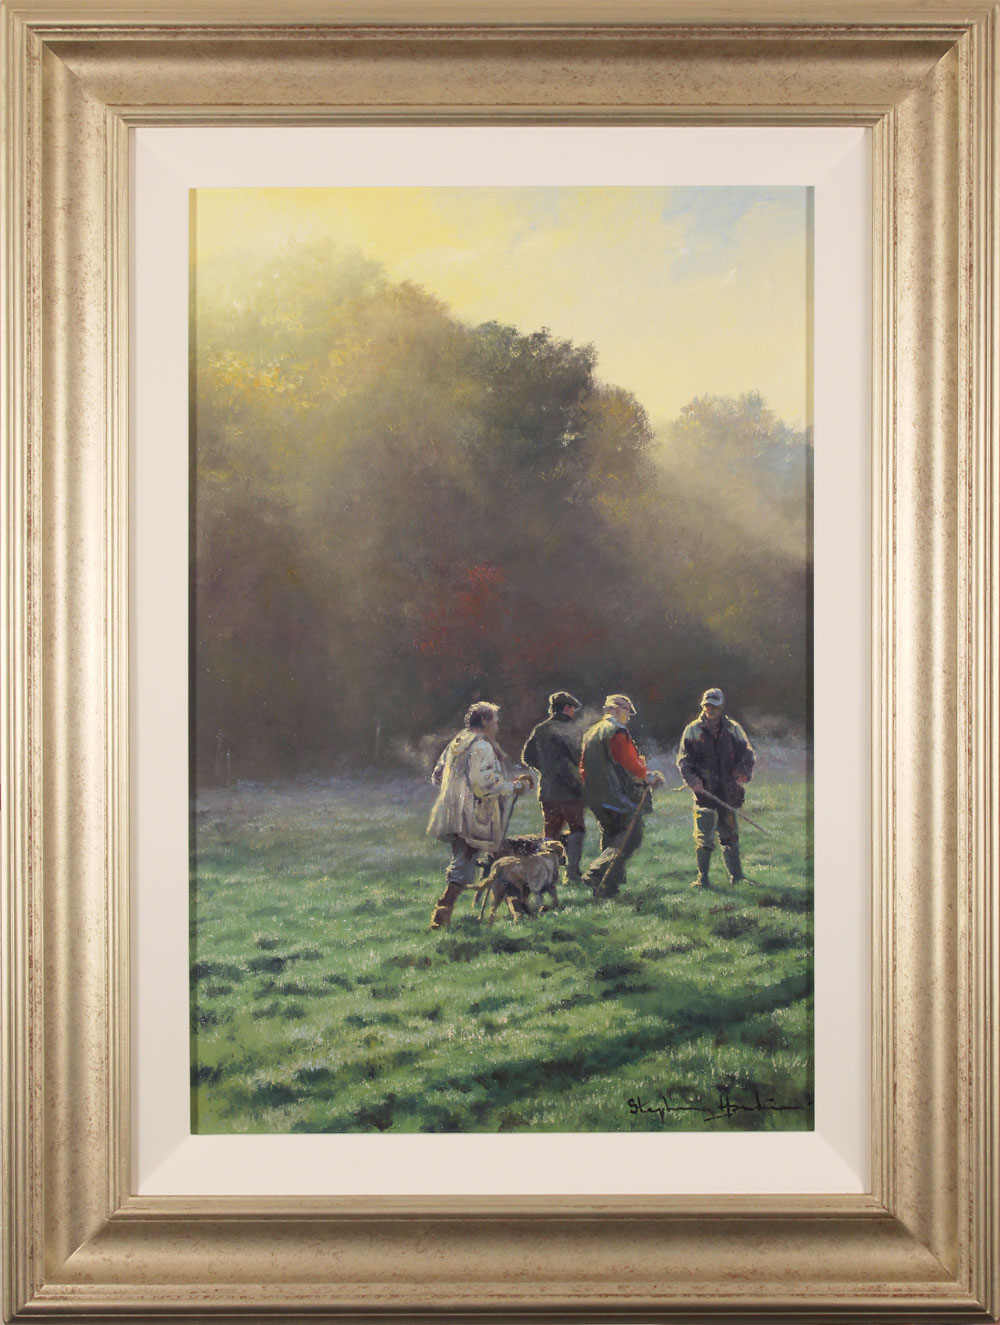 Stephen Hawkins, Original oil painting on canvas, An Early Start, click to enlarge